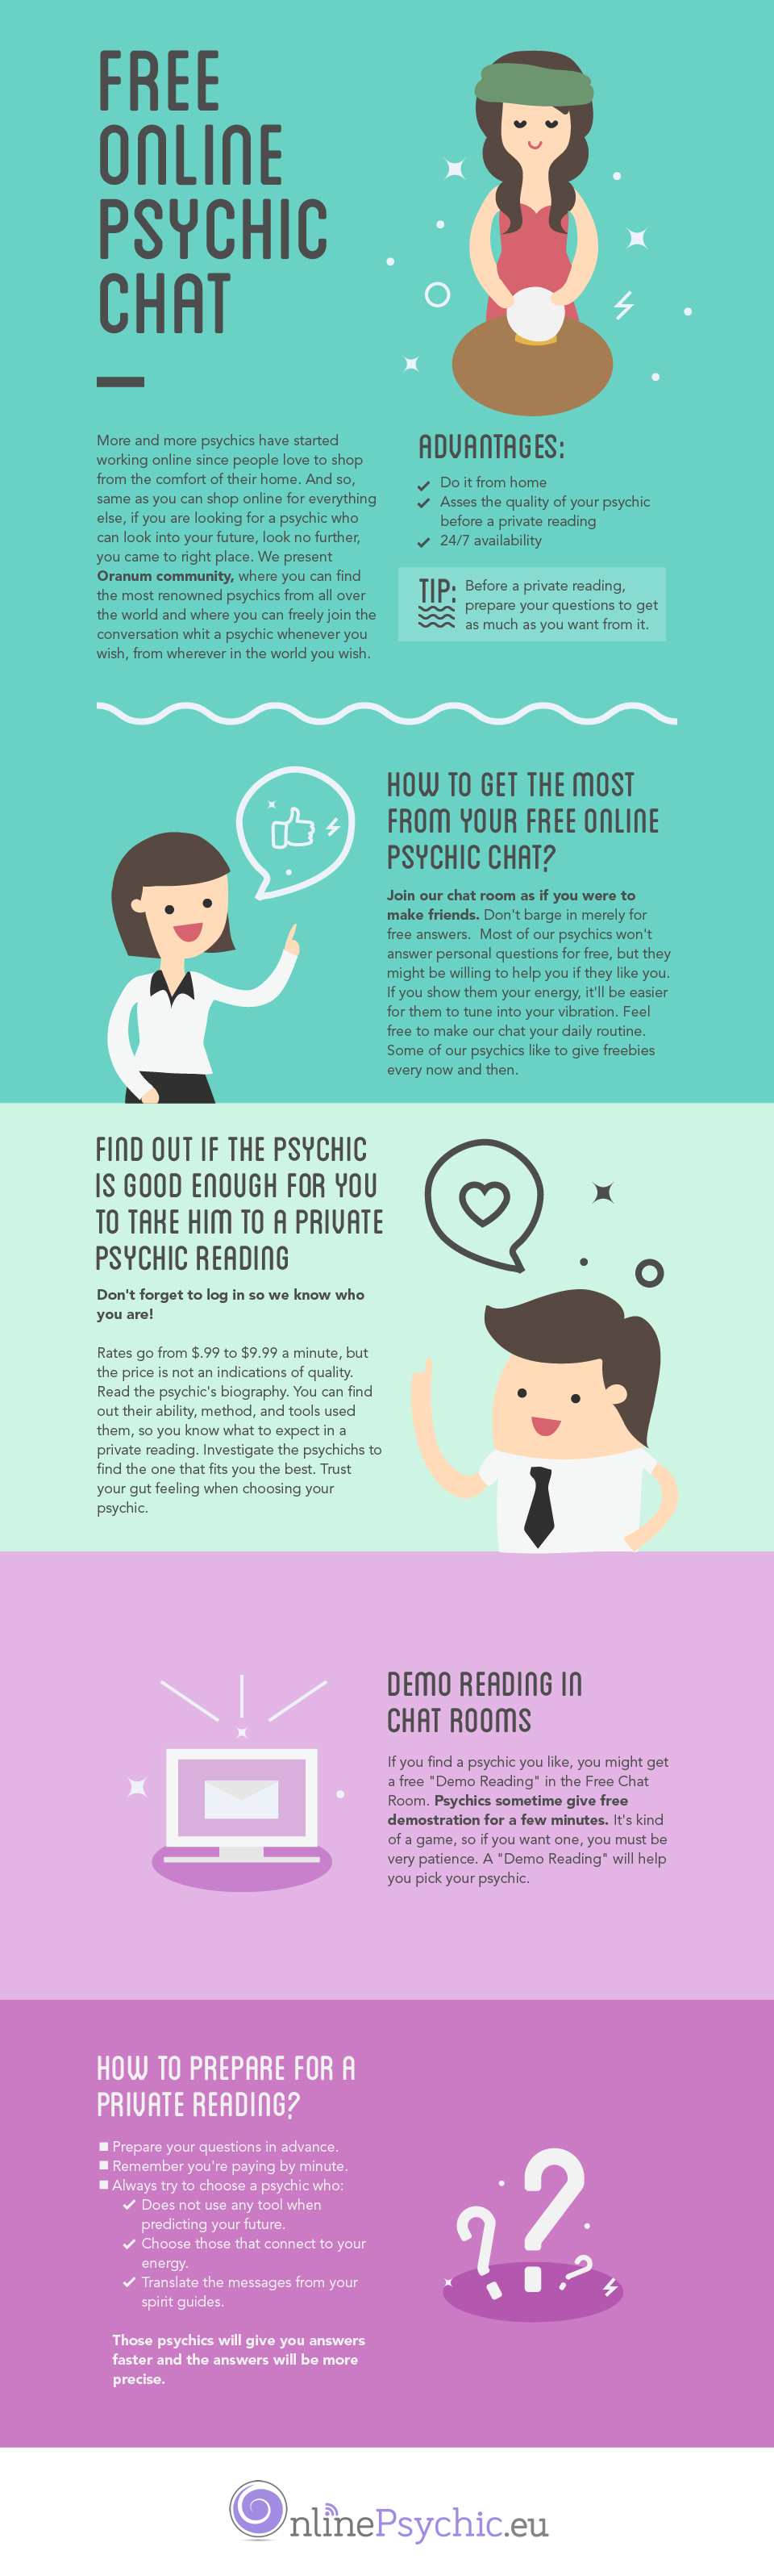 Free Online Psychic Chat - Infographic